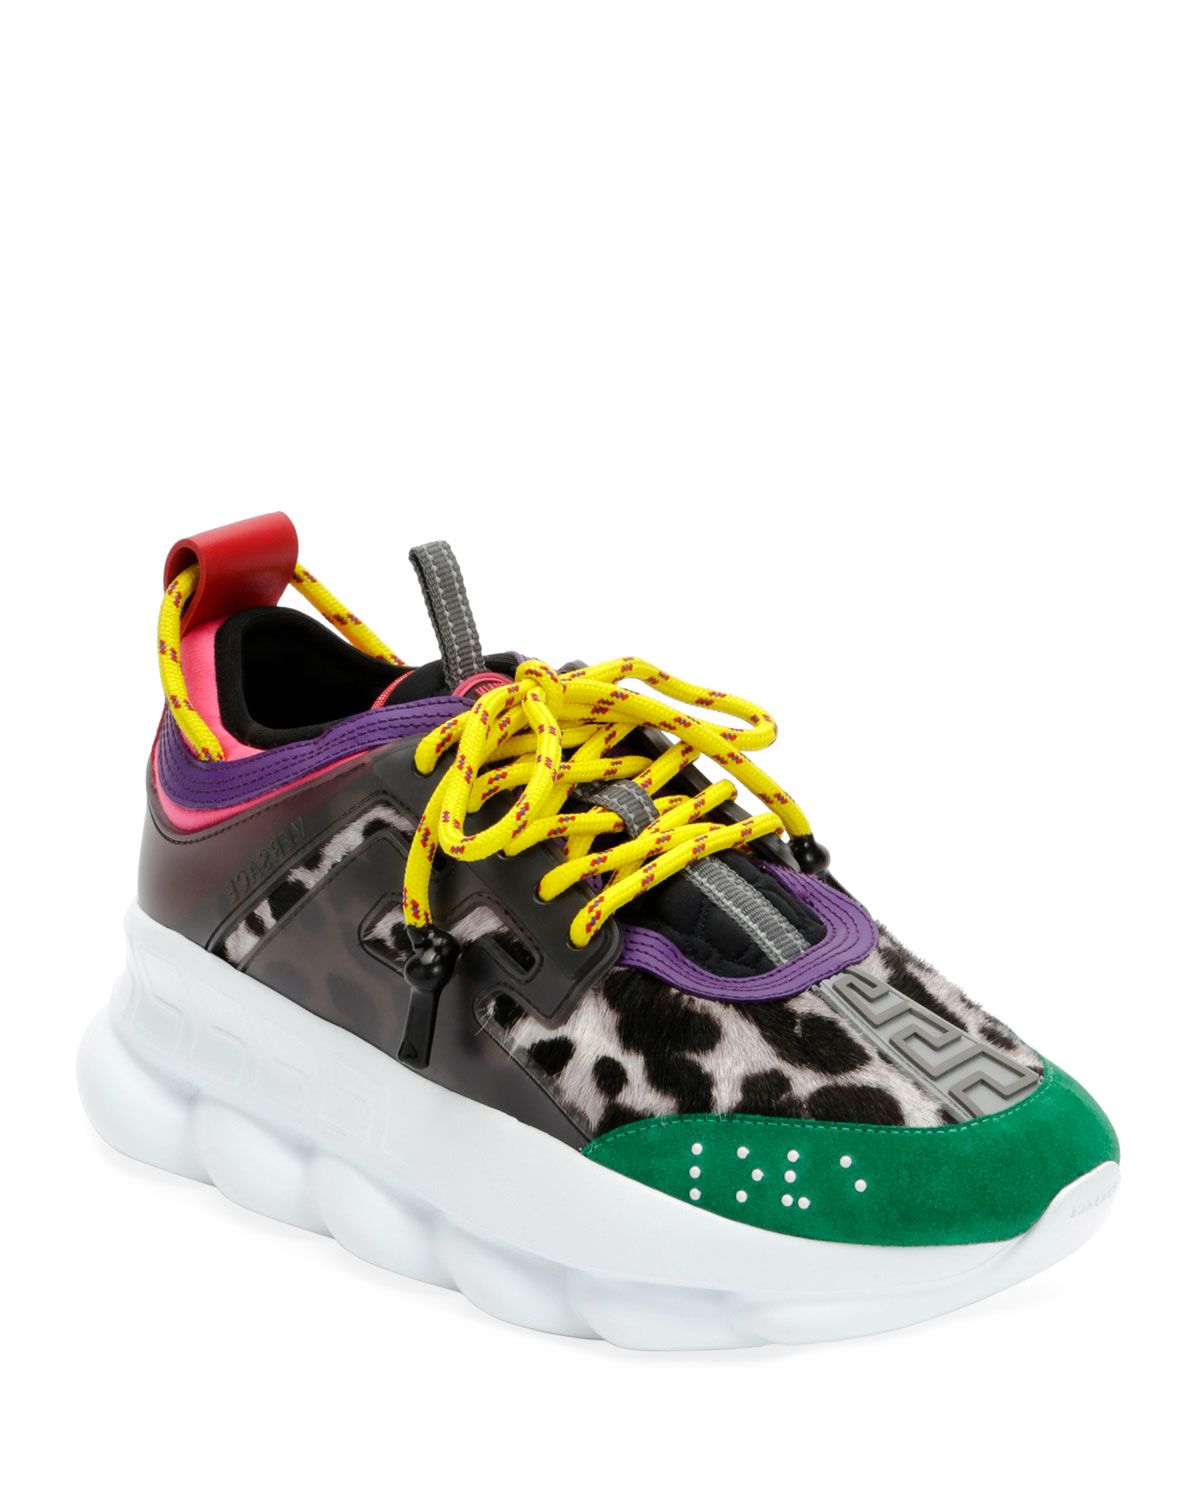 versace shoes for boys